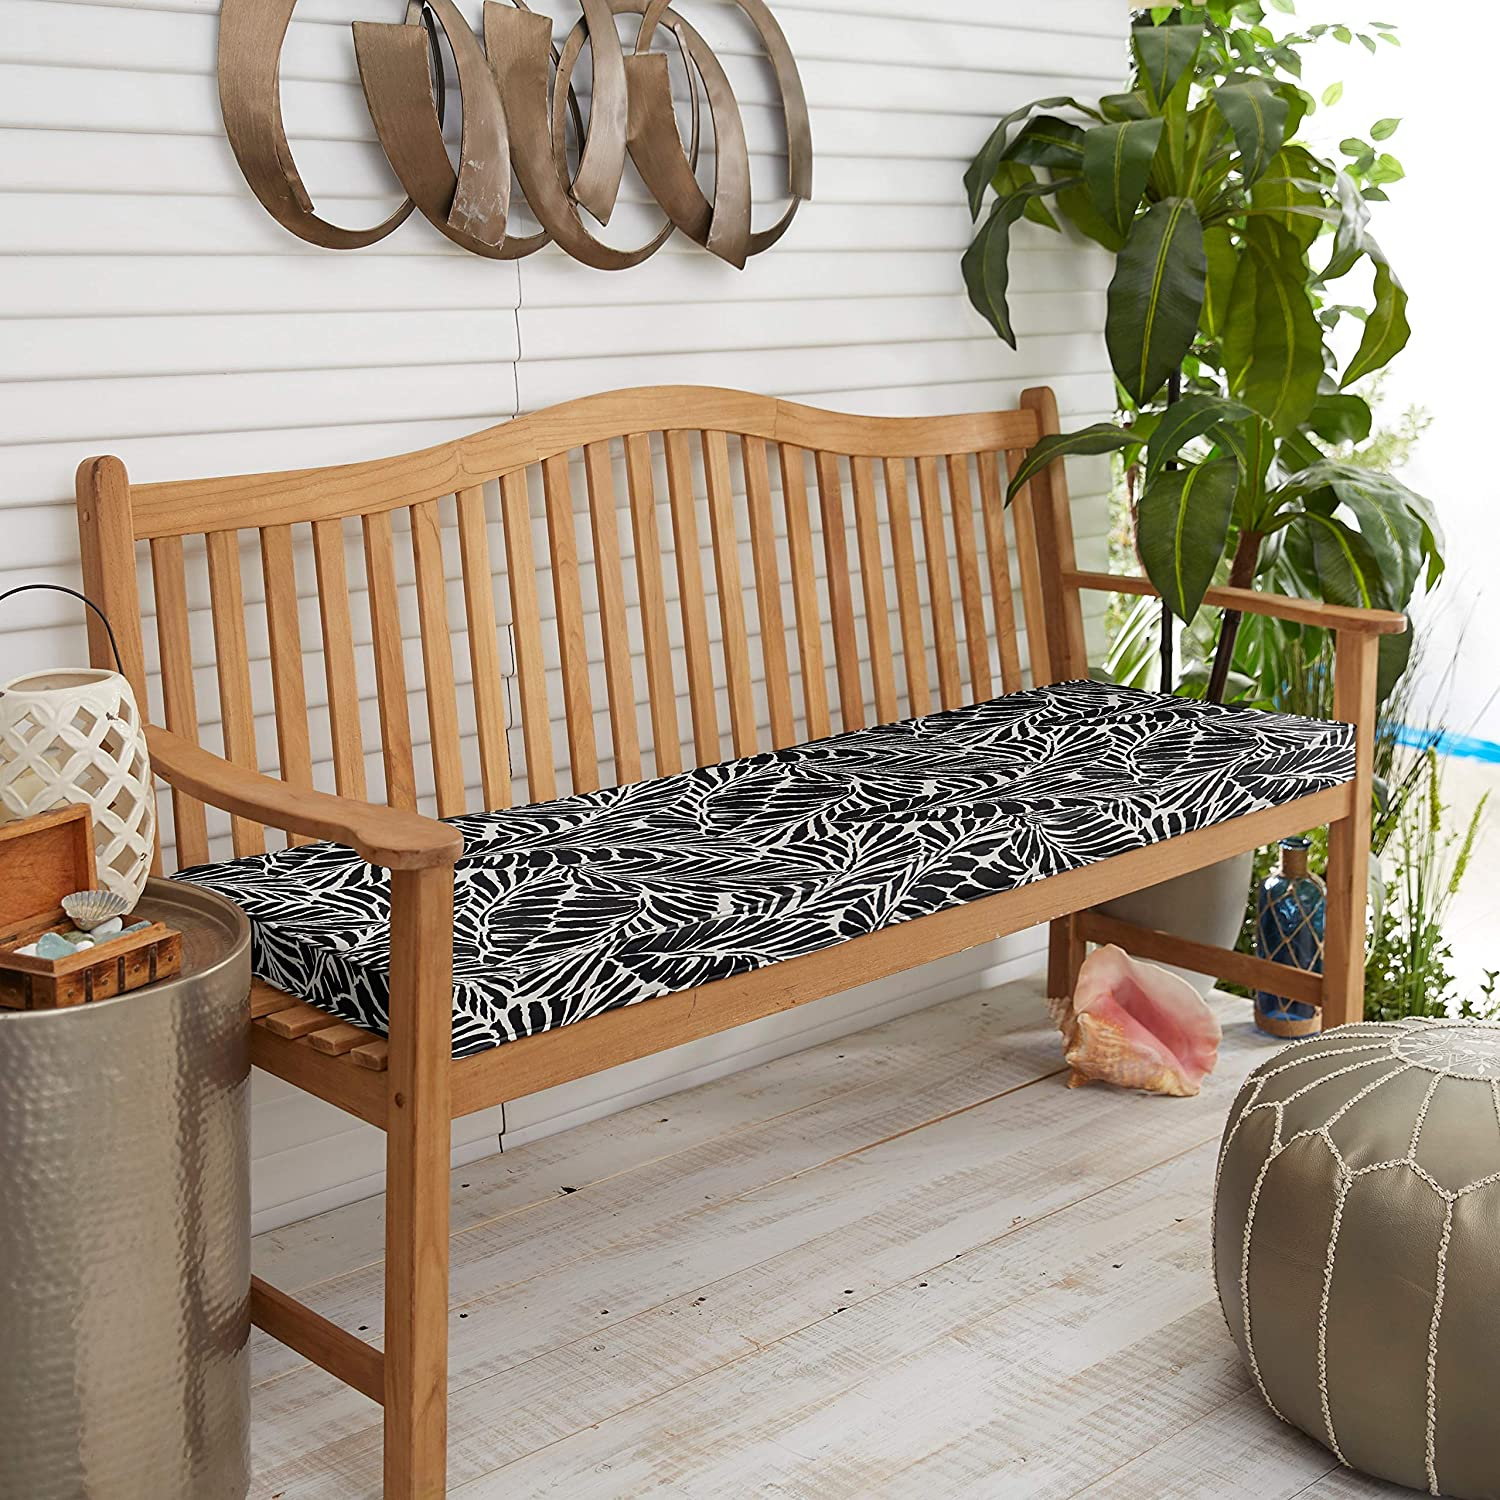 MISC Indoor/Outdoor Black Bench Cushion Geometric Polyester Fade Resistant Uv